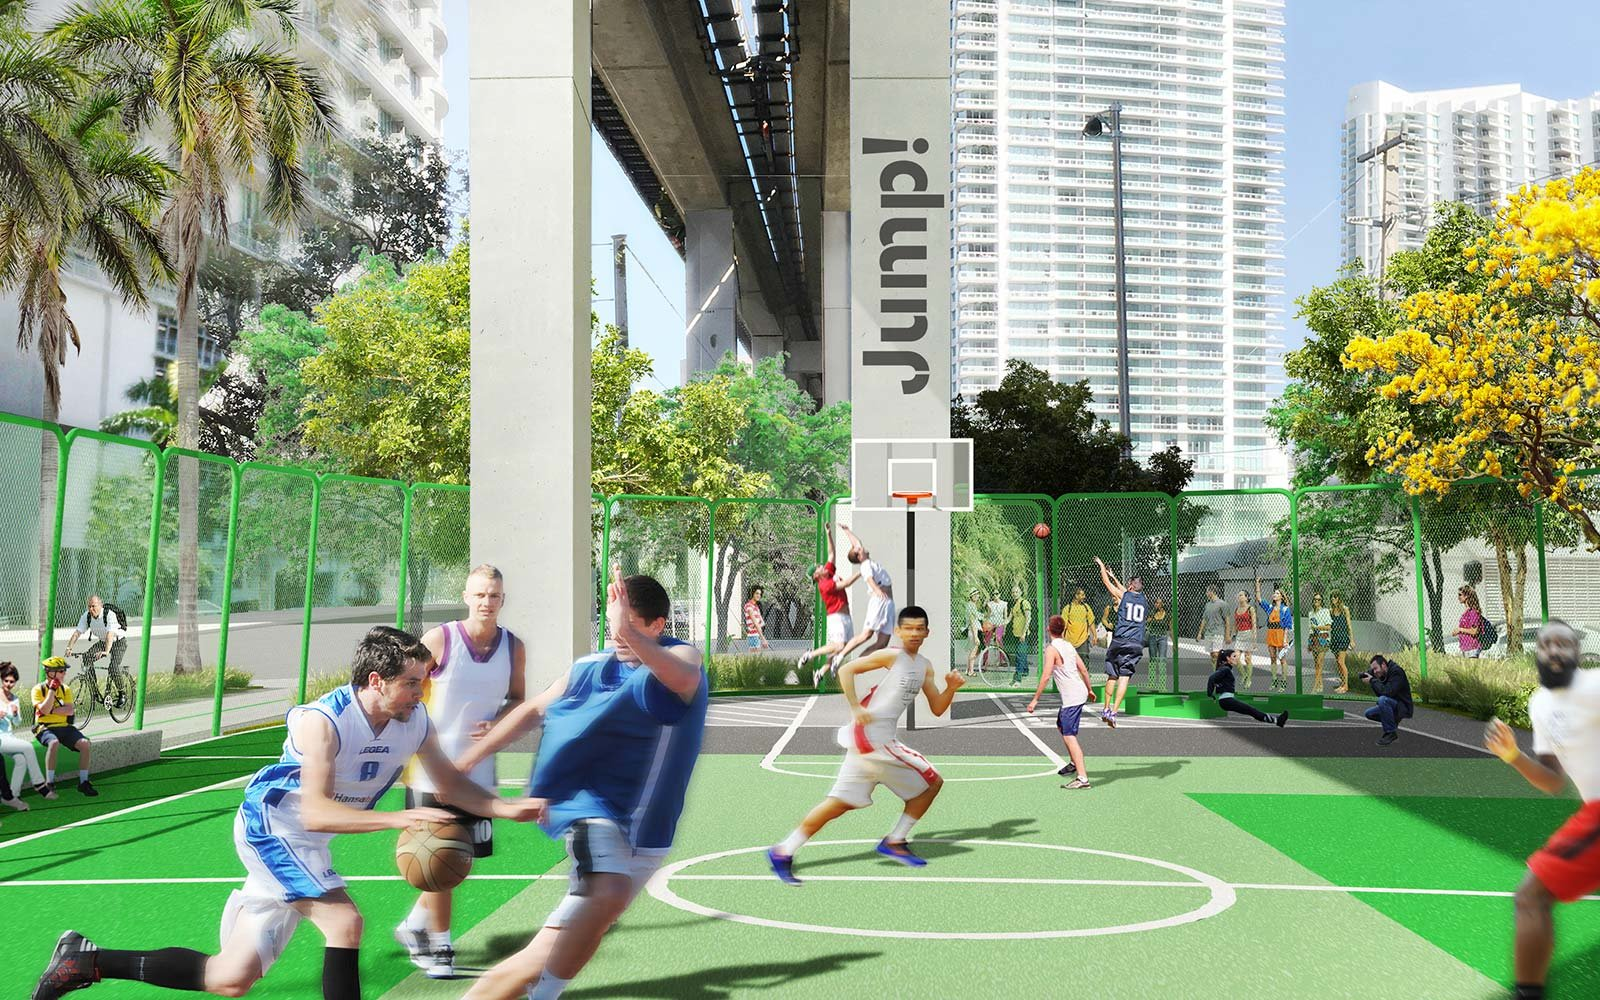 The Underline Urban Redevelopment Project James Corner Field Operations Brickell Park Miami Florida Basketball Gym